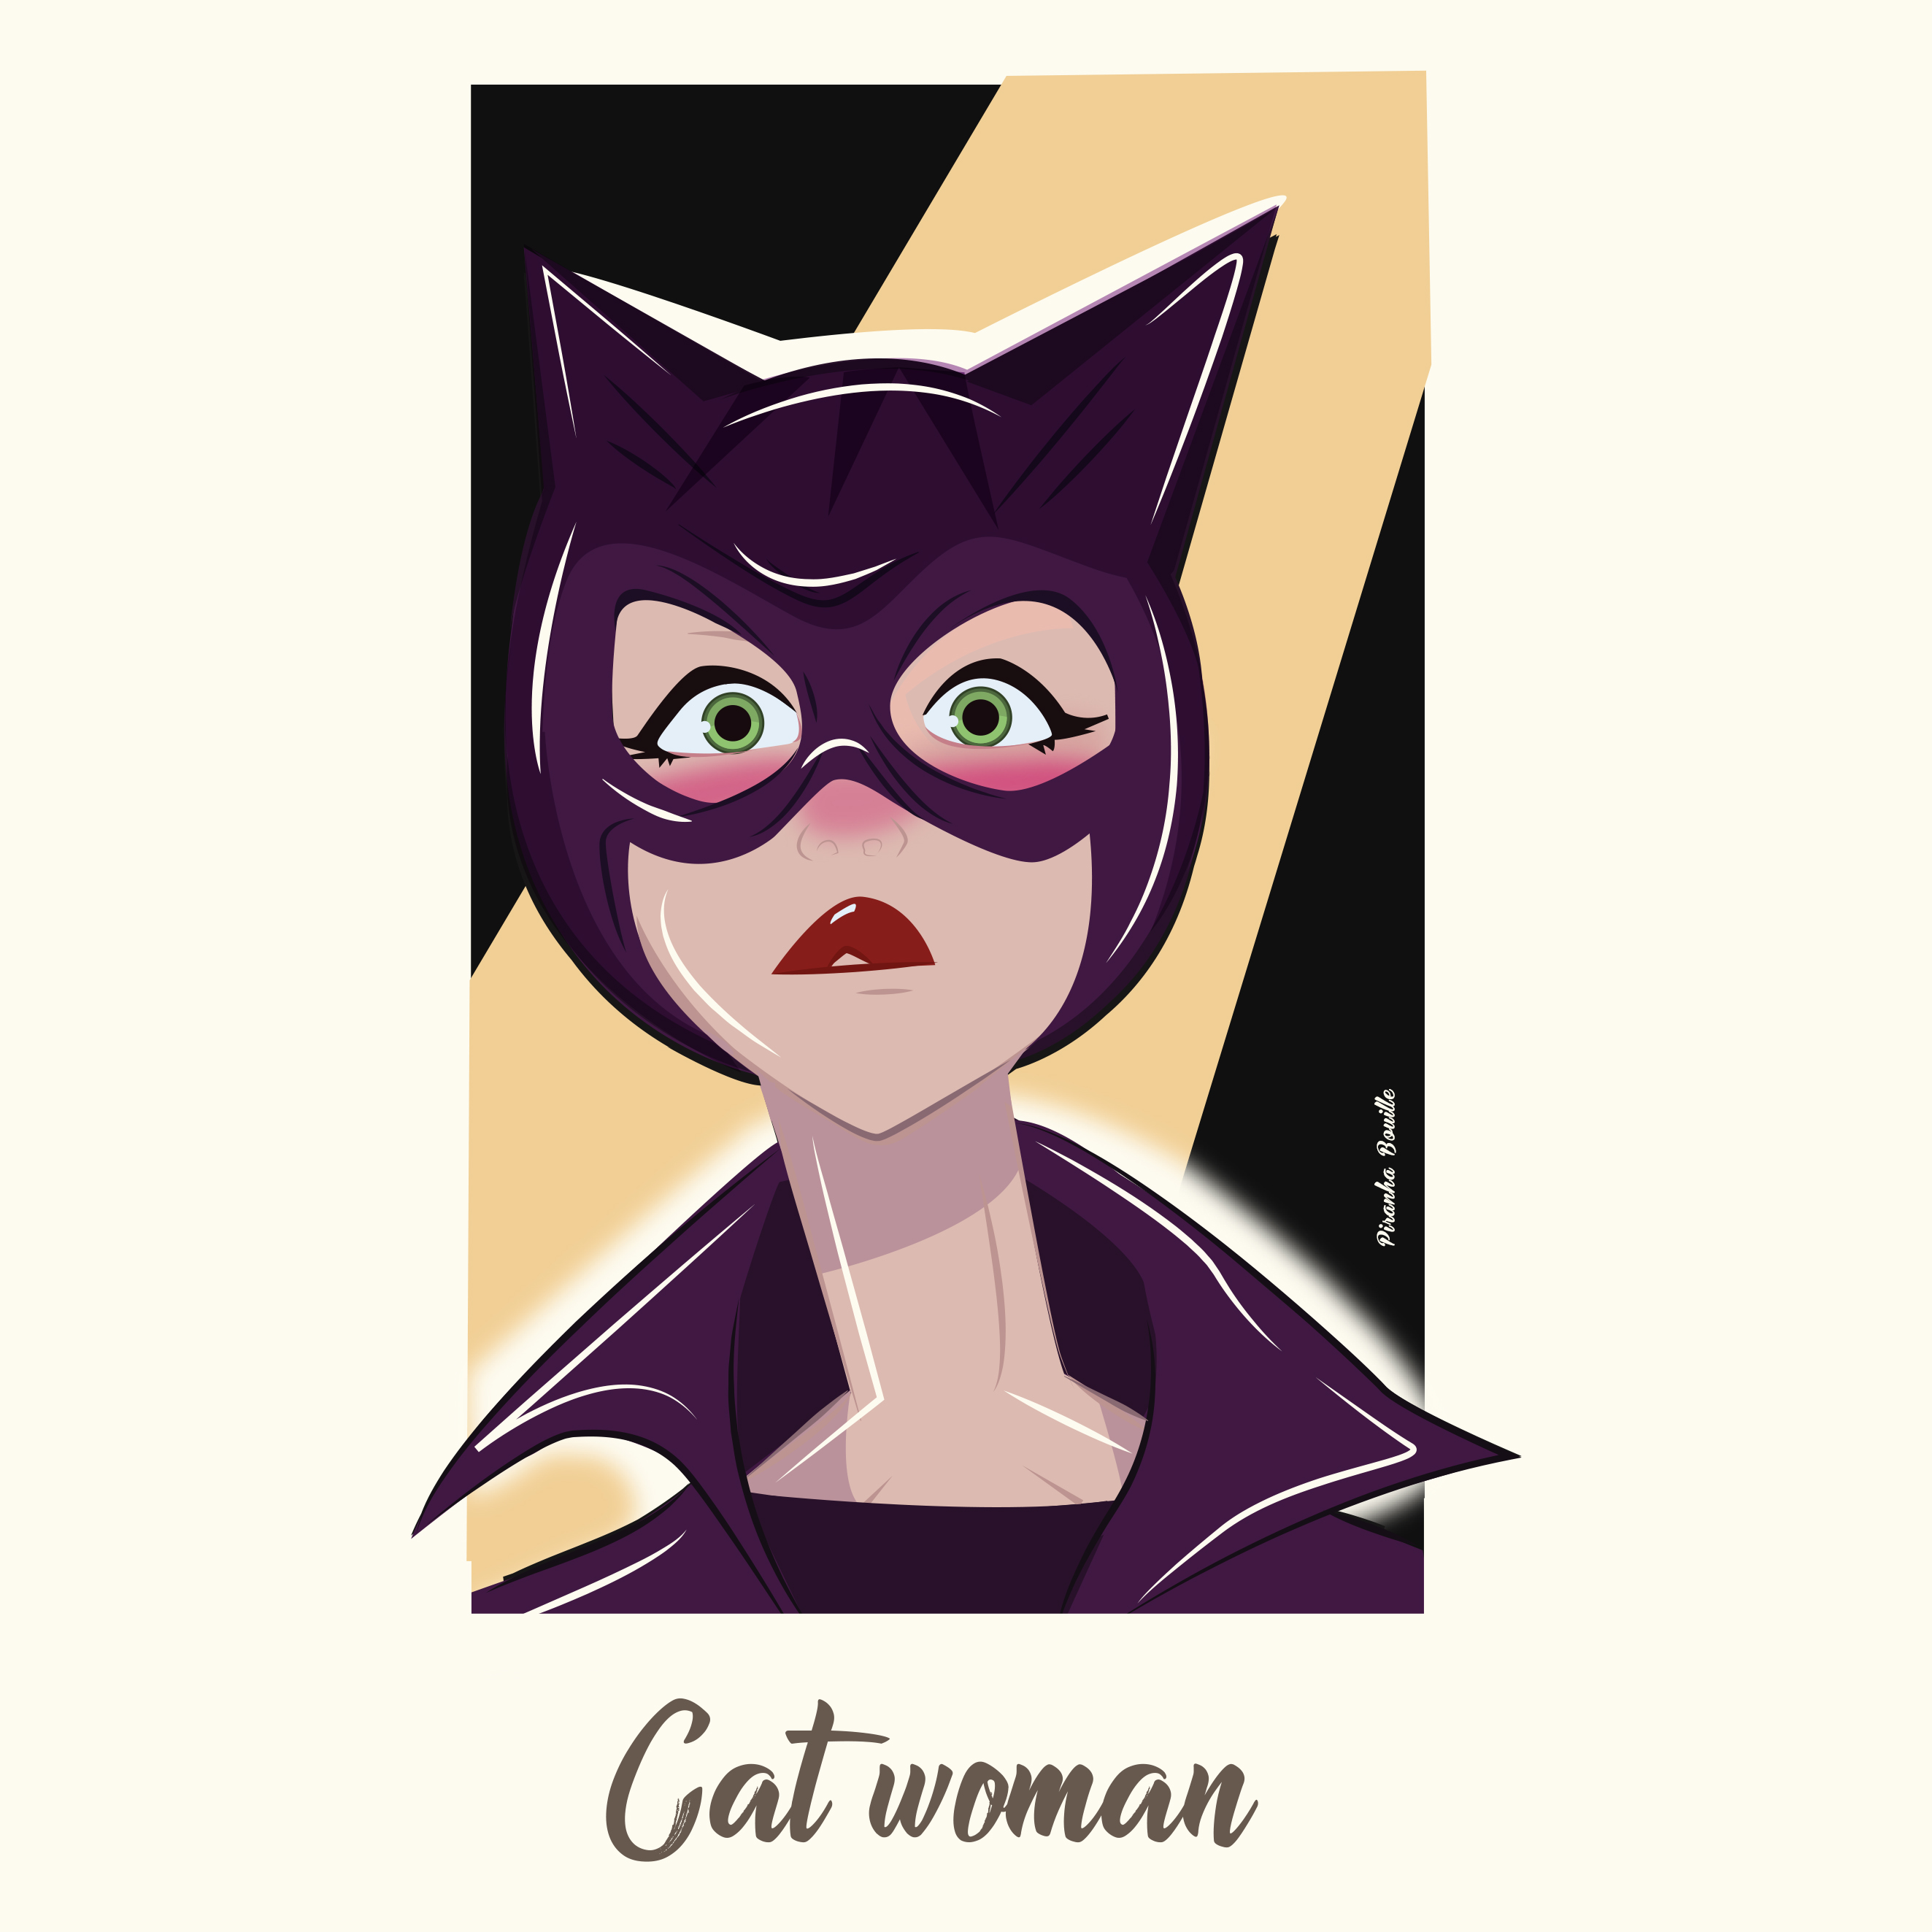 Fan art illustré de Catwoman